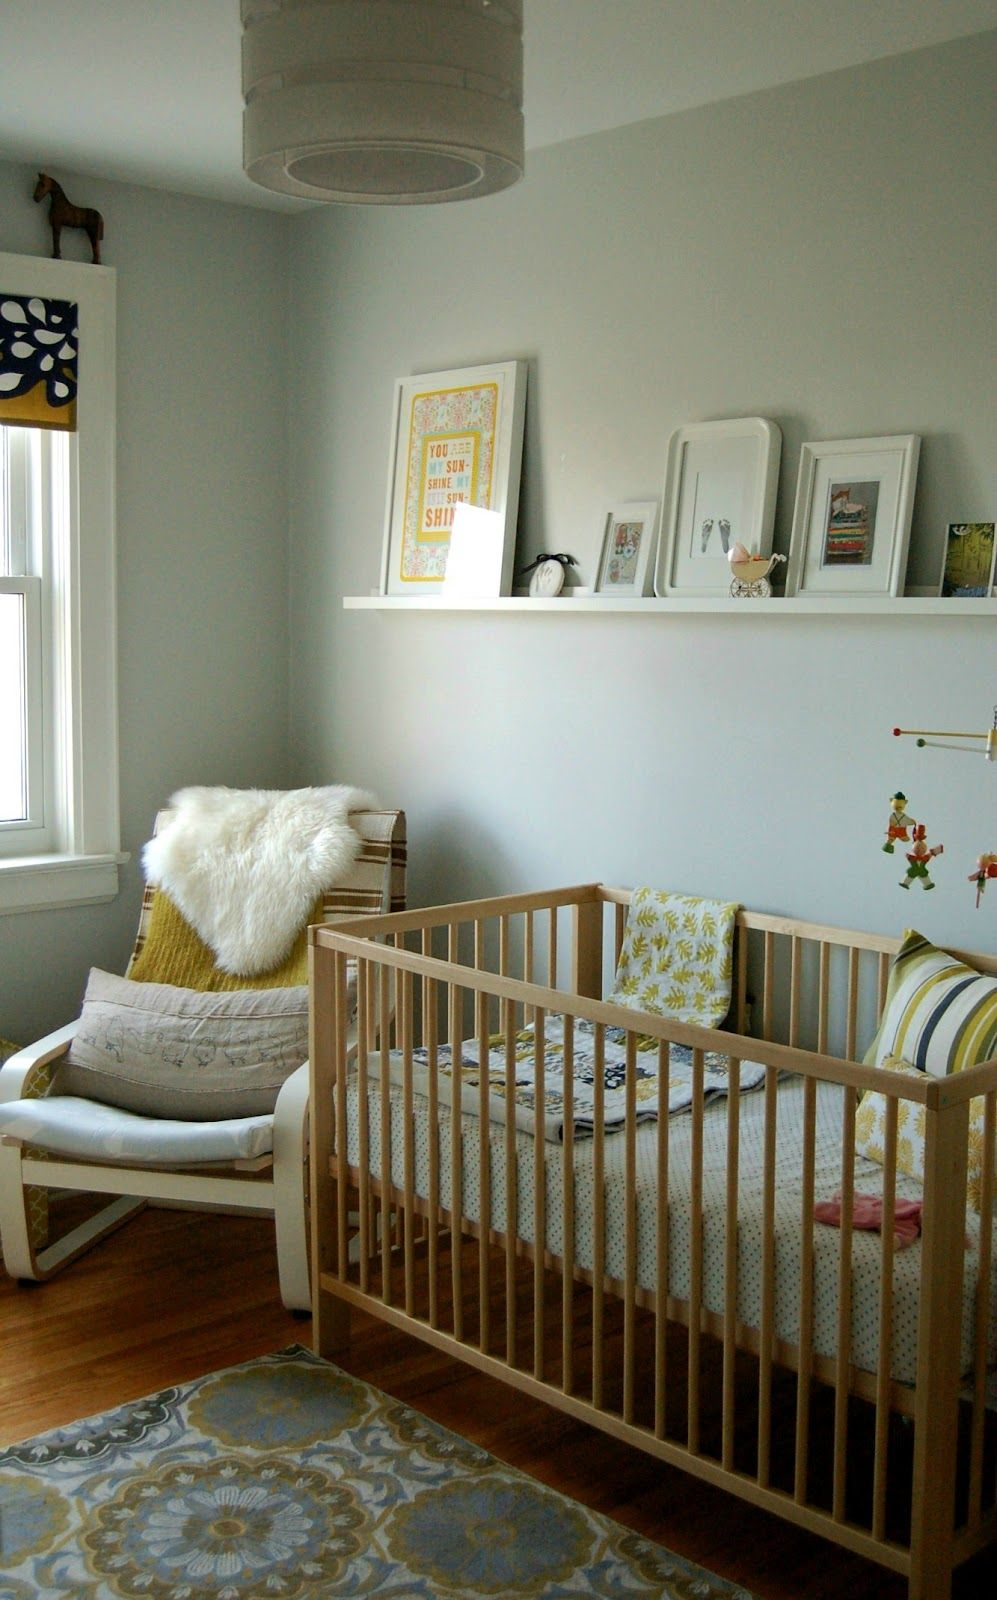 I like the shelf above the cot but also the placement of